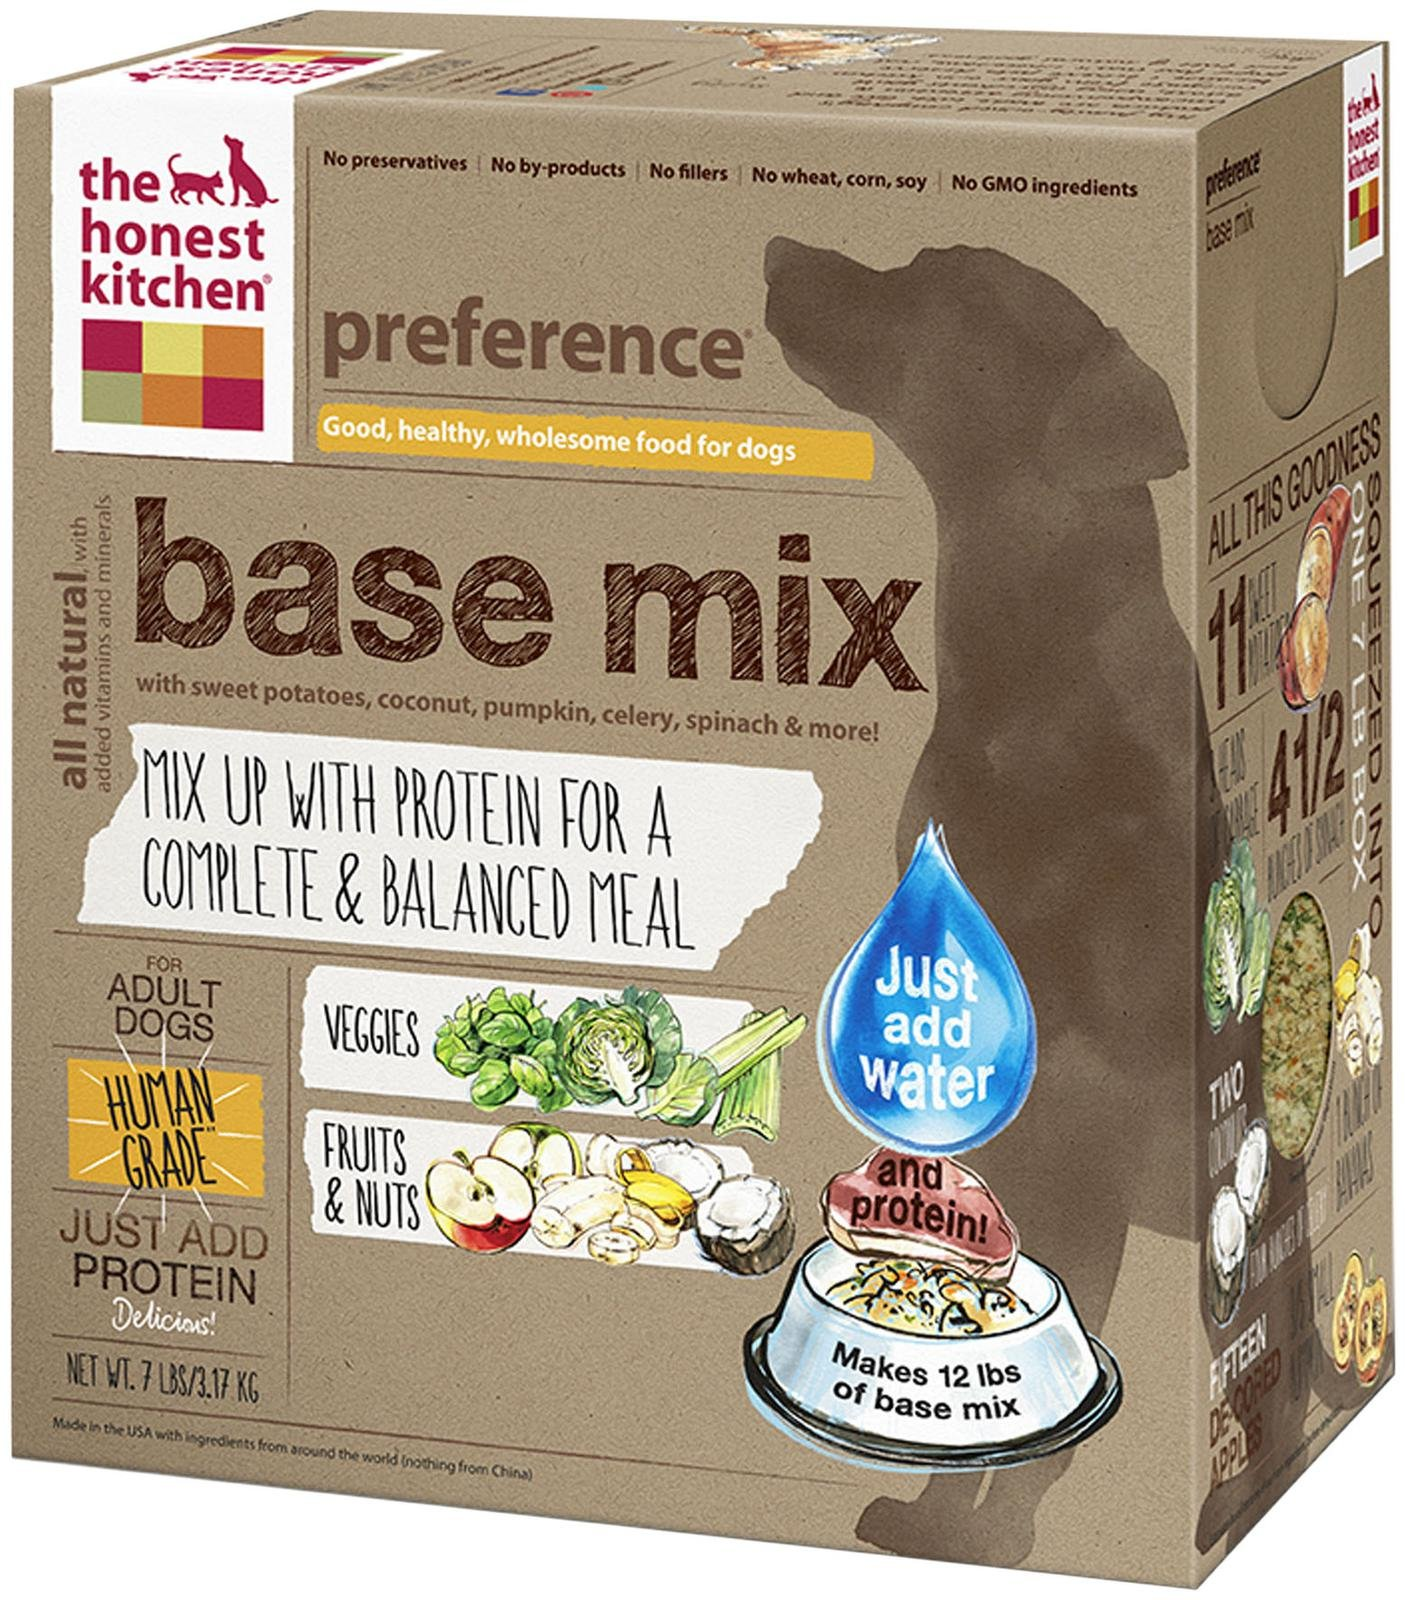 Honest Kitchen's Base Mix Dog Food